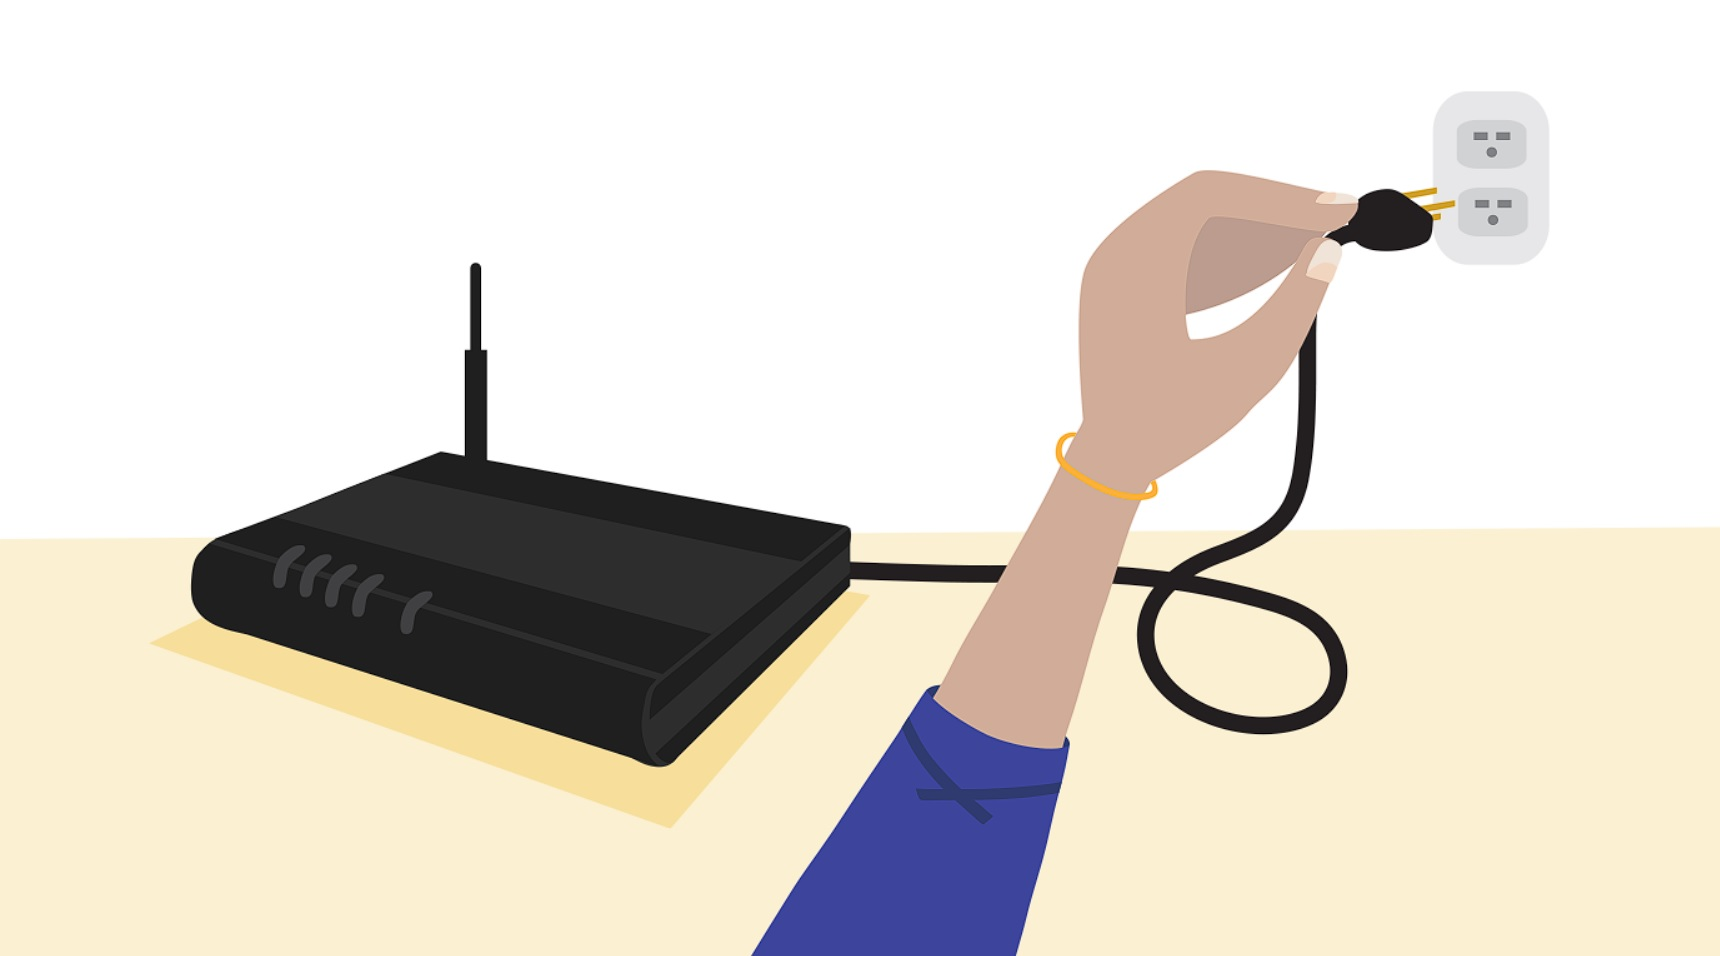 Remove Wifi from power